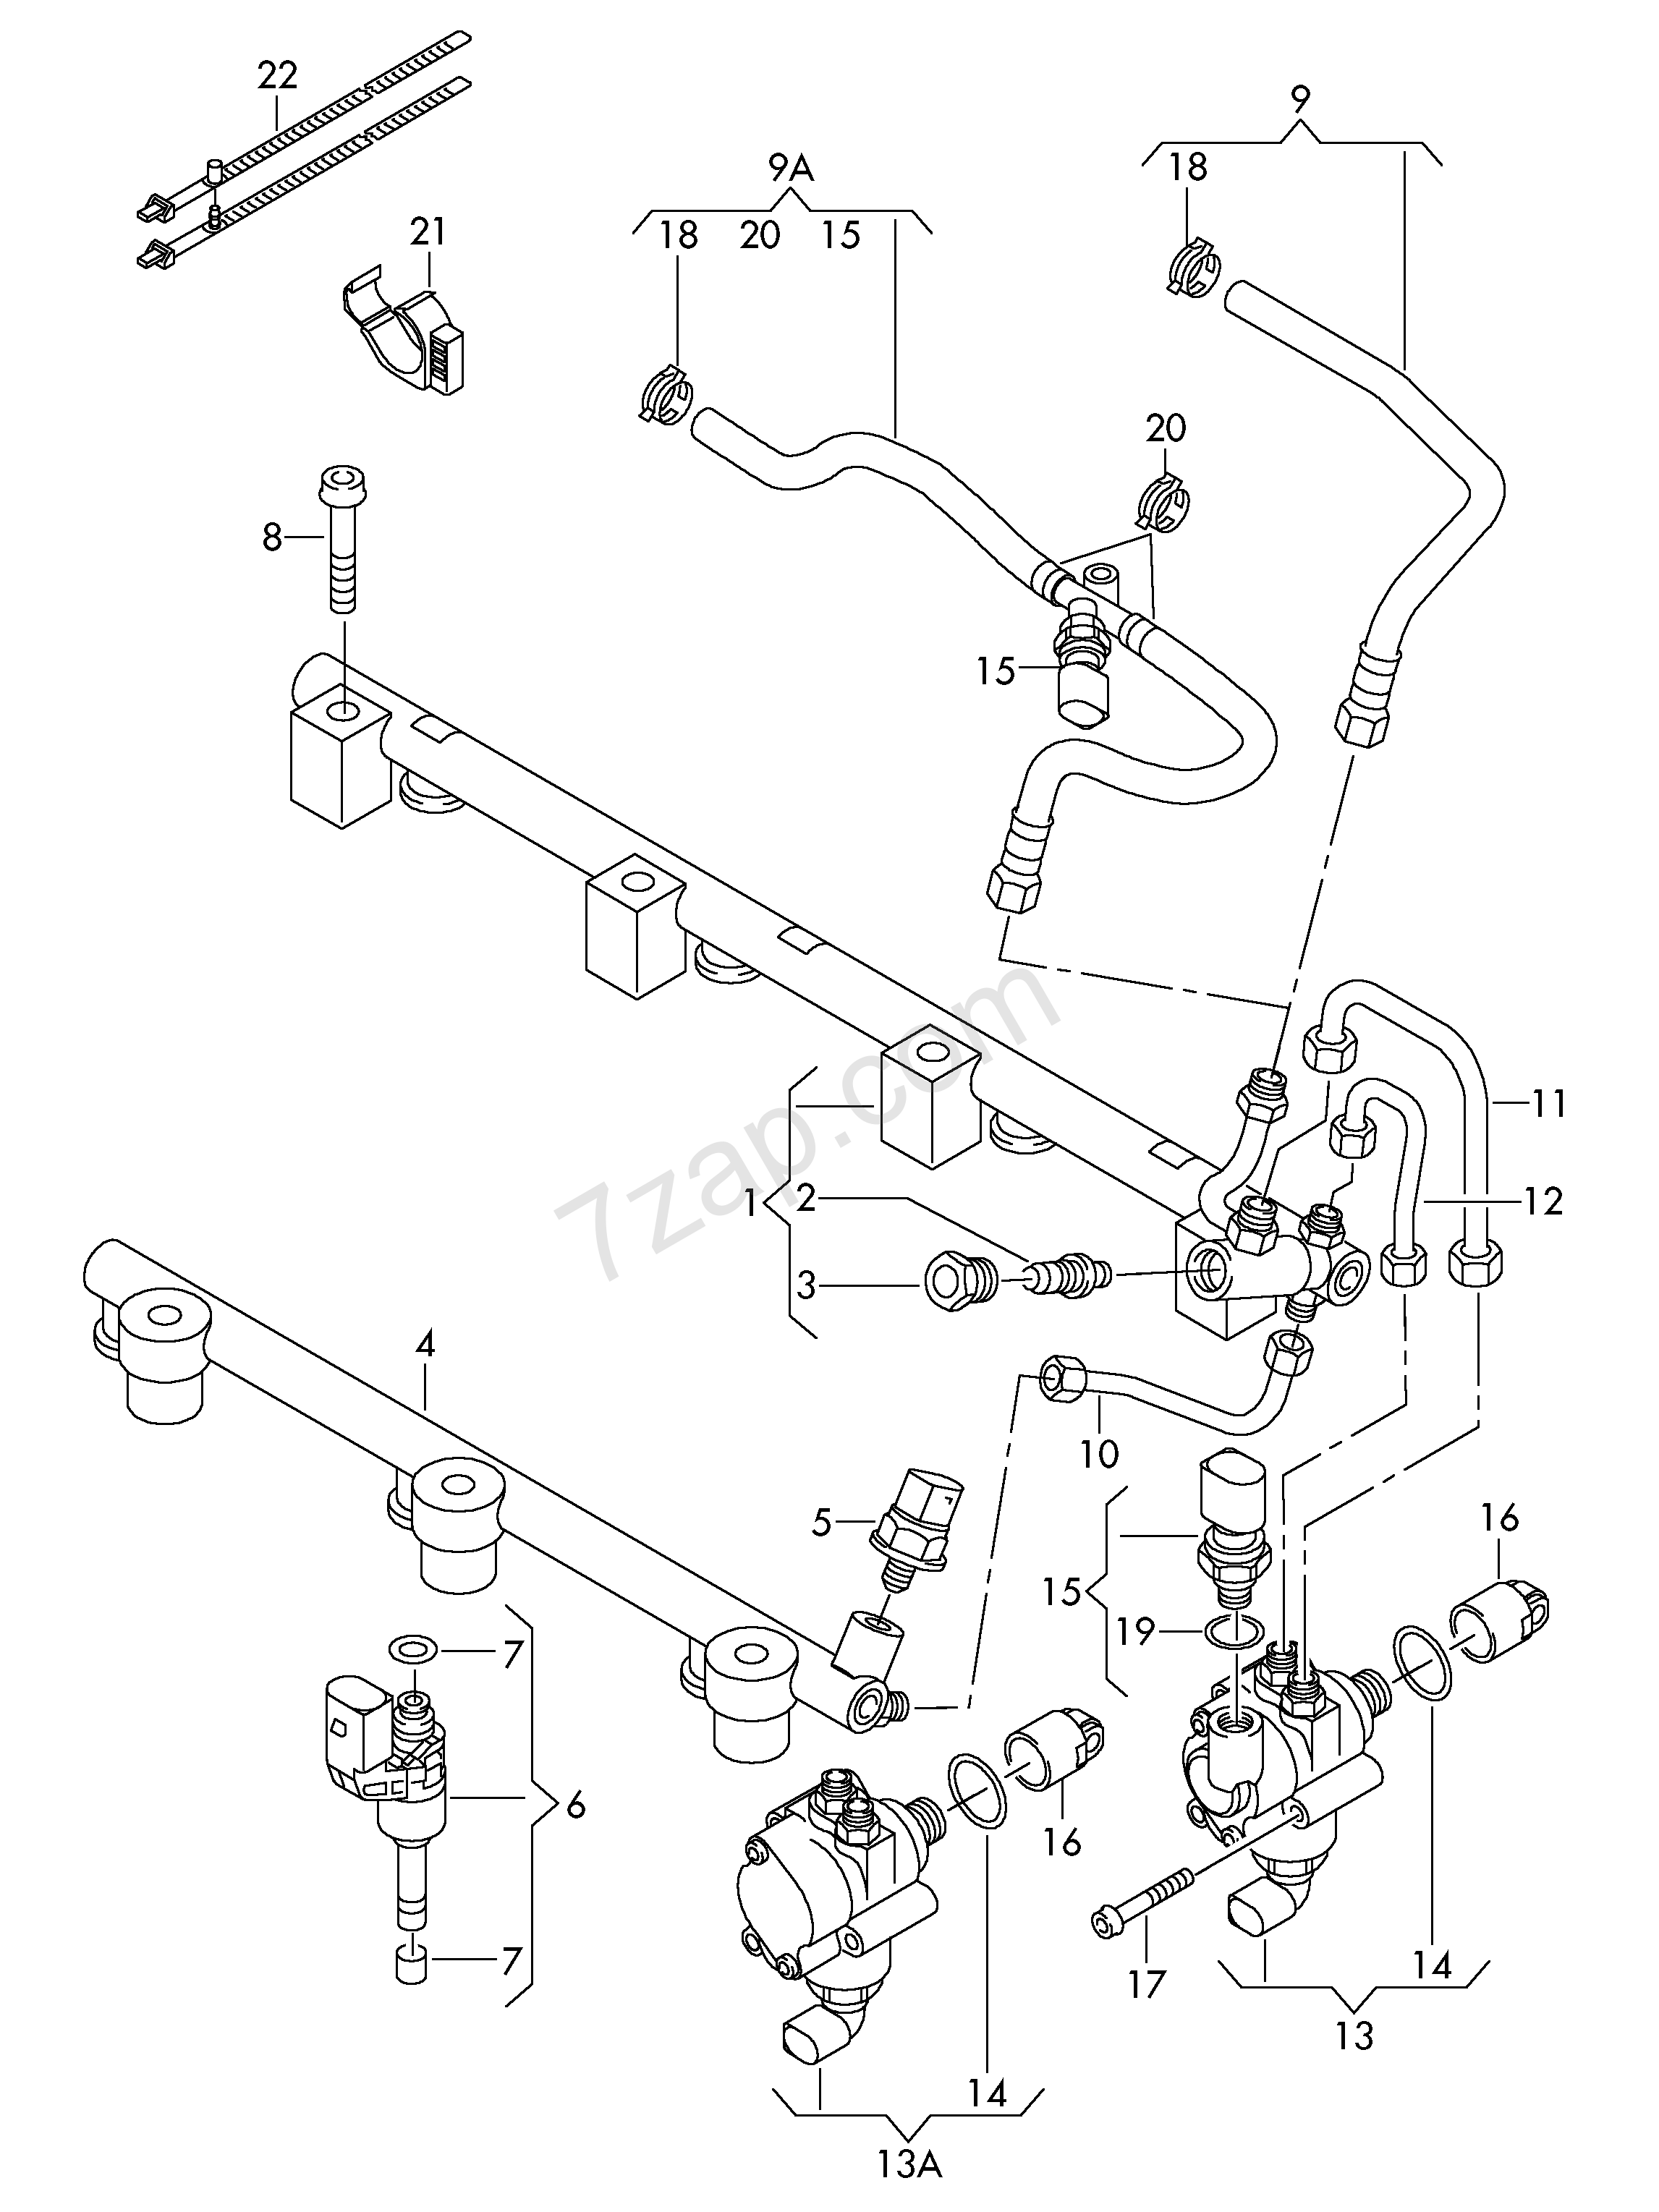 Fuel Rail Fuel Pump Injection Valve Audi Q7 Aq7